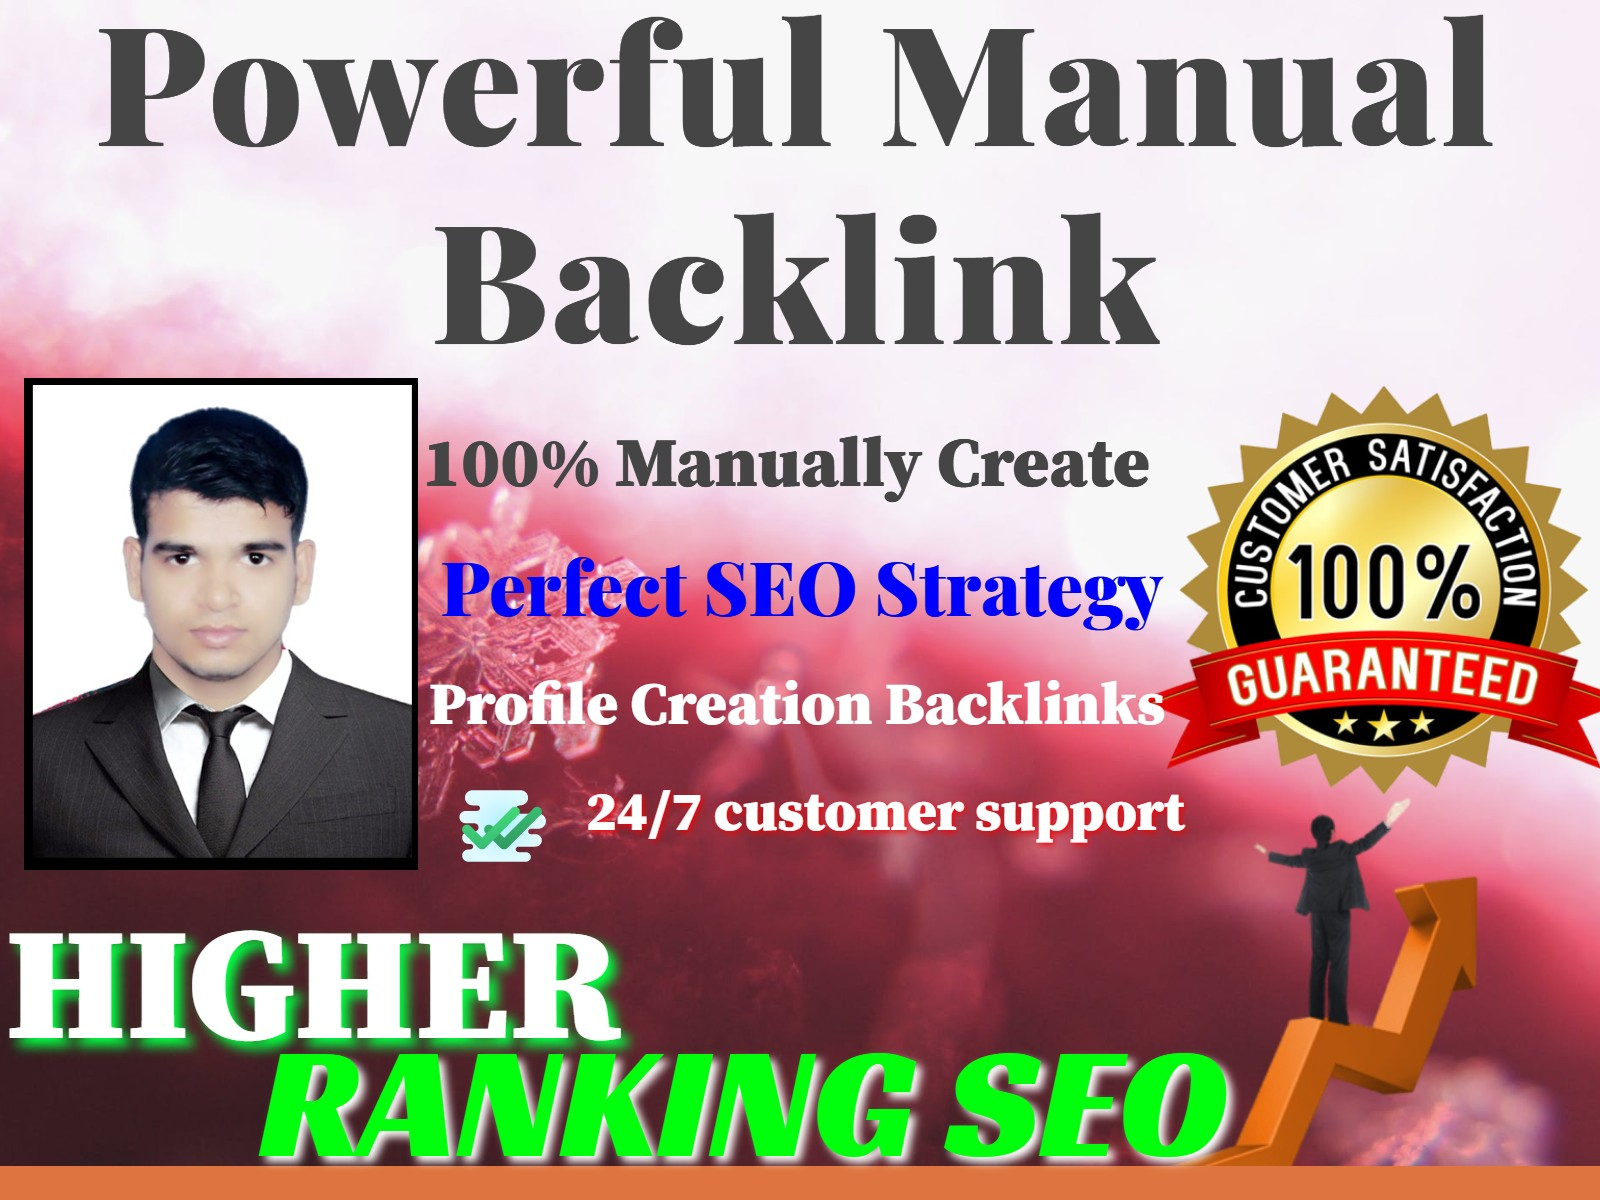 I Will Create 30 High Authority Profile Creation Backlinks.